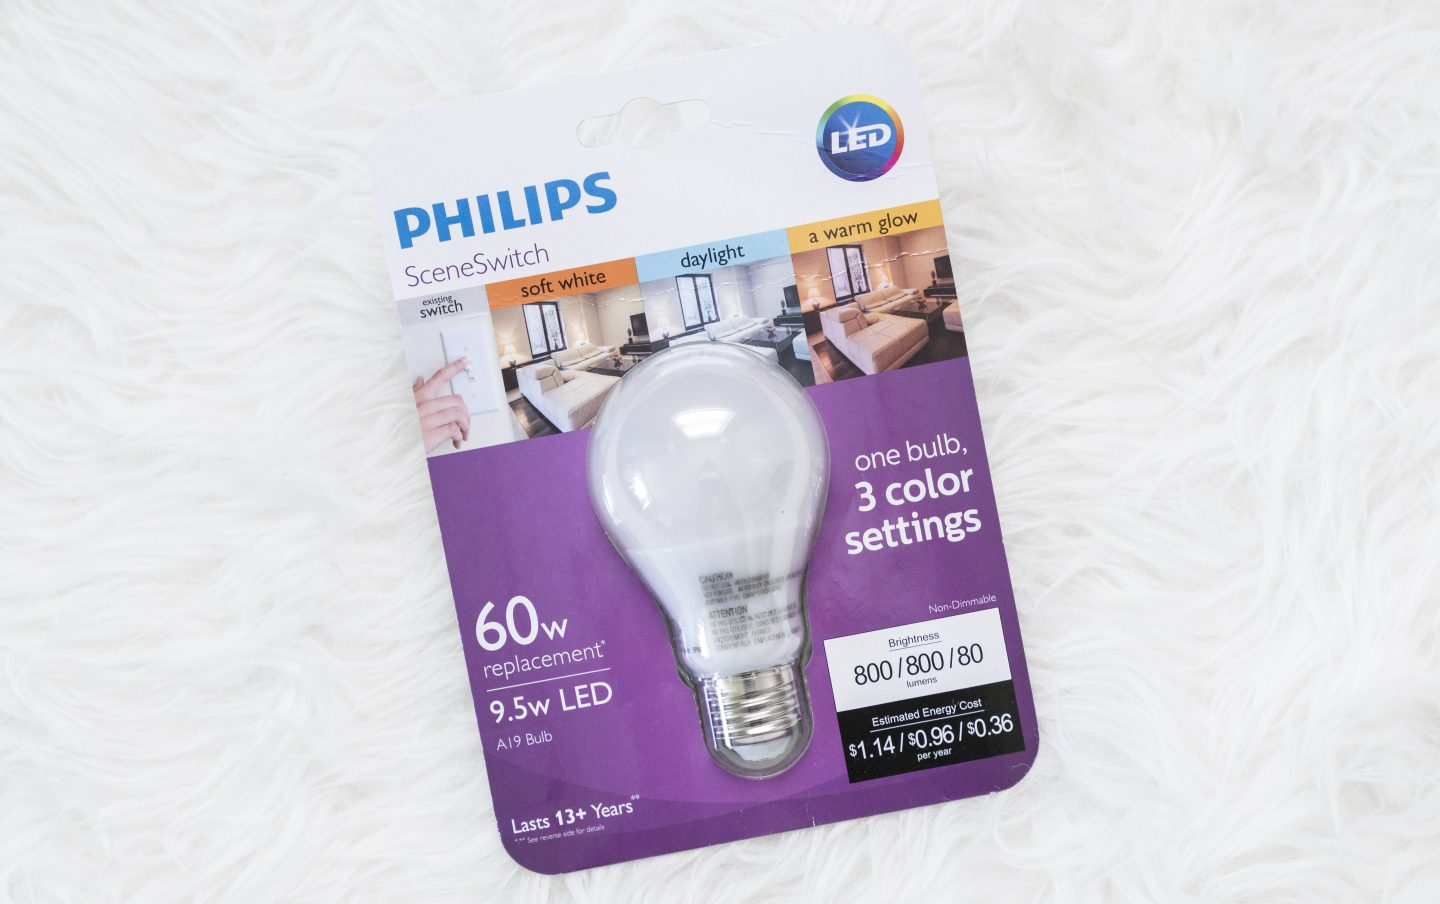 philips sceneswitch xolivi